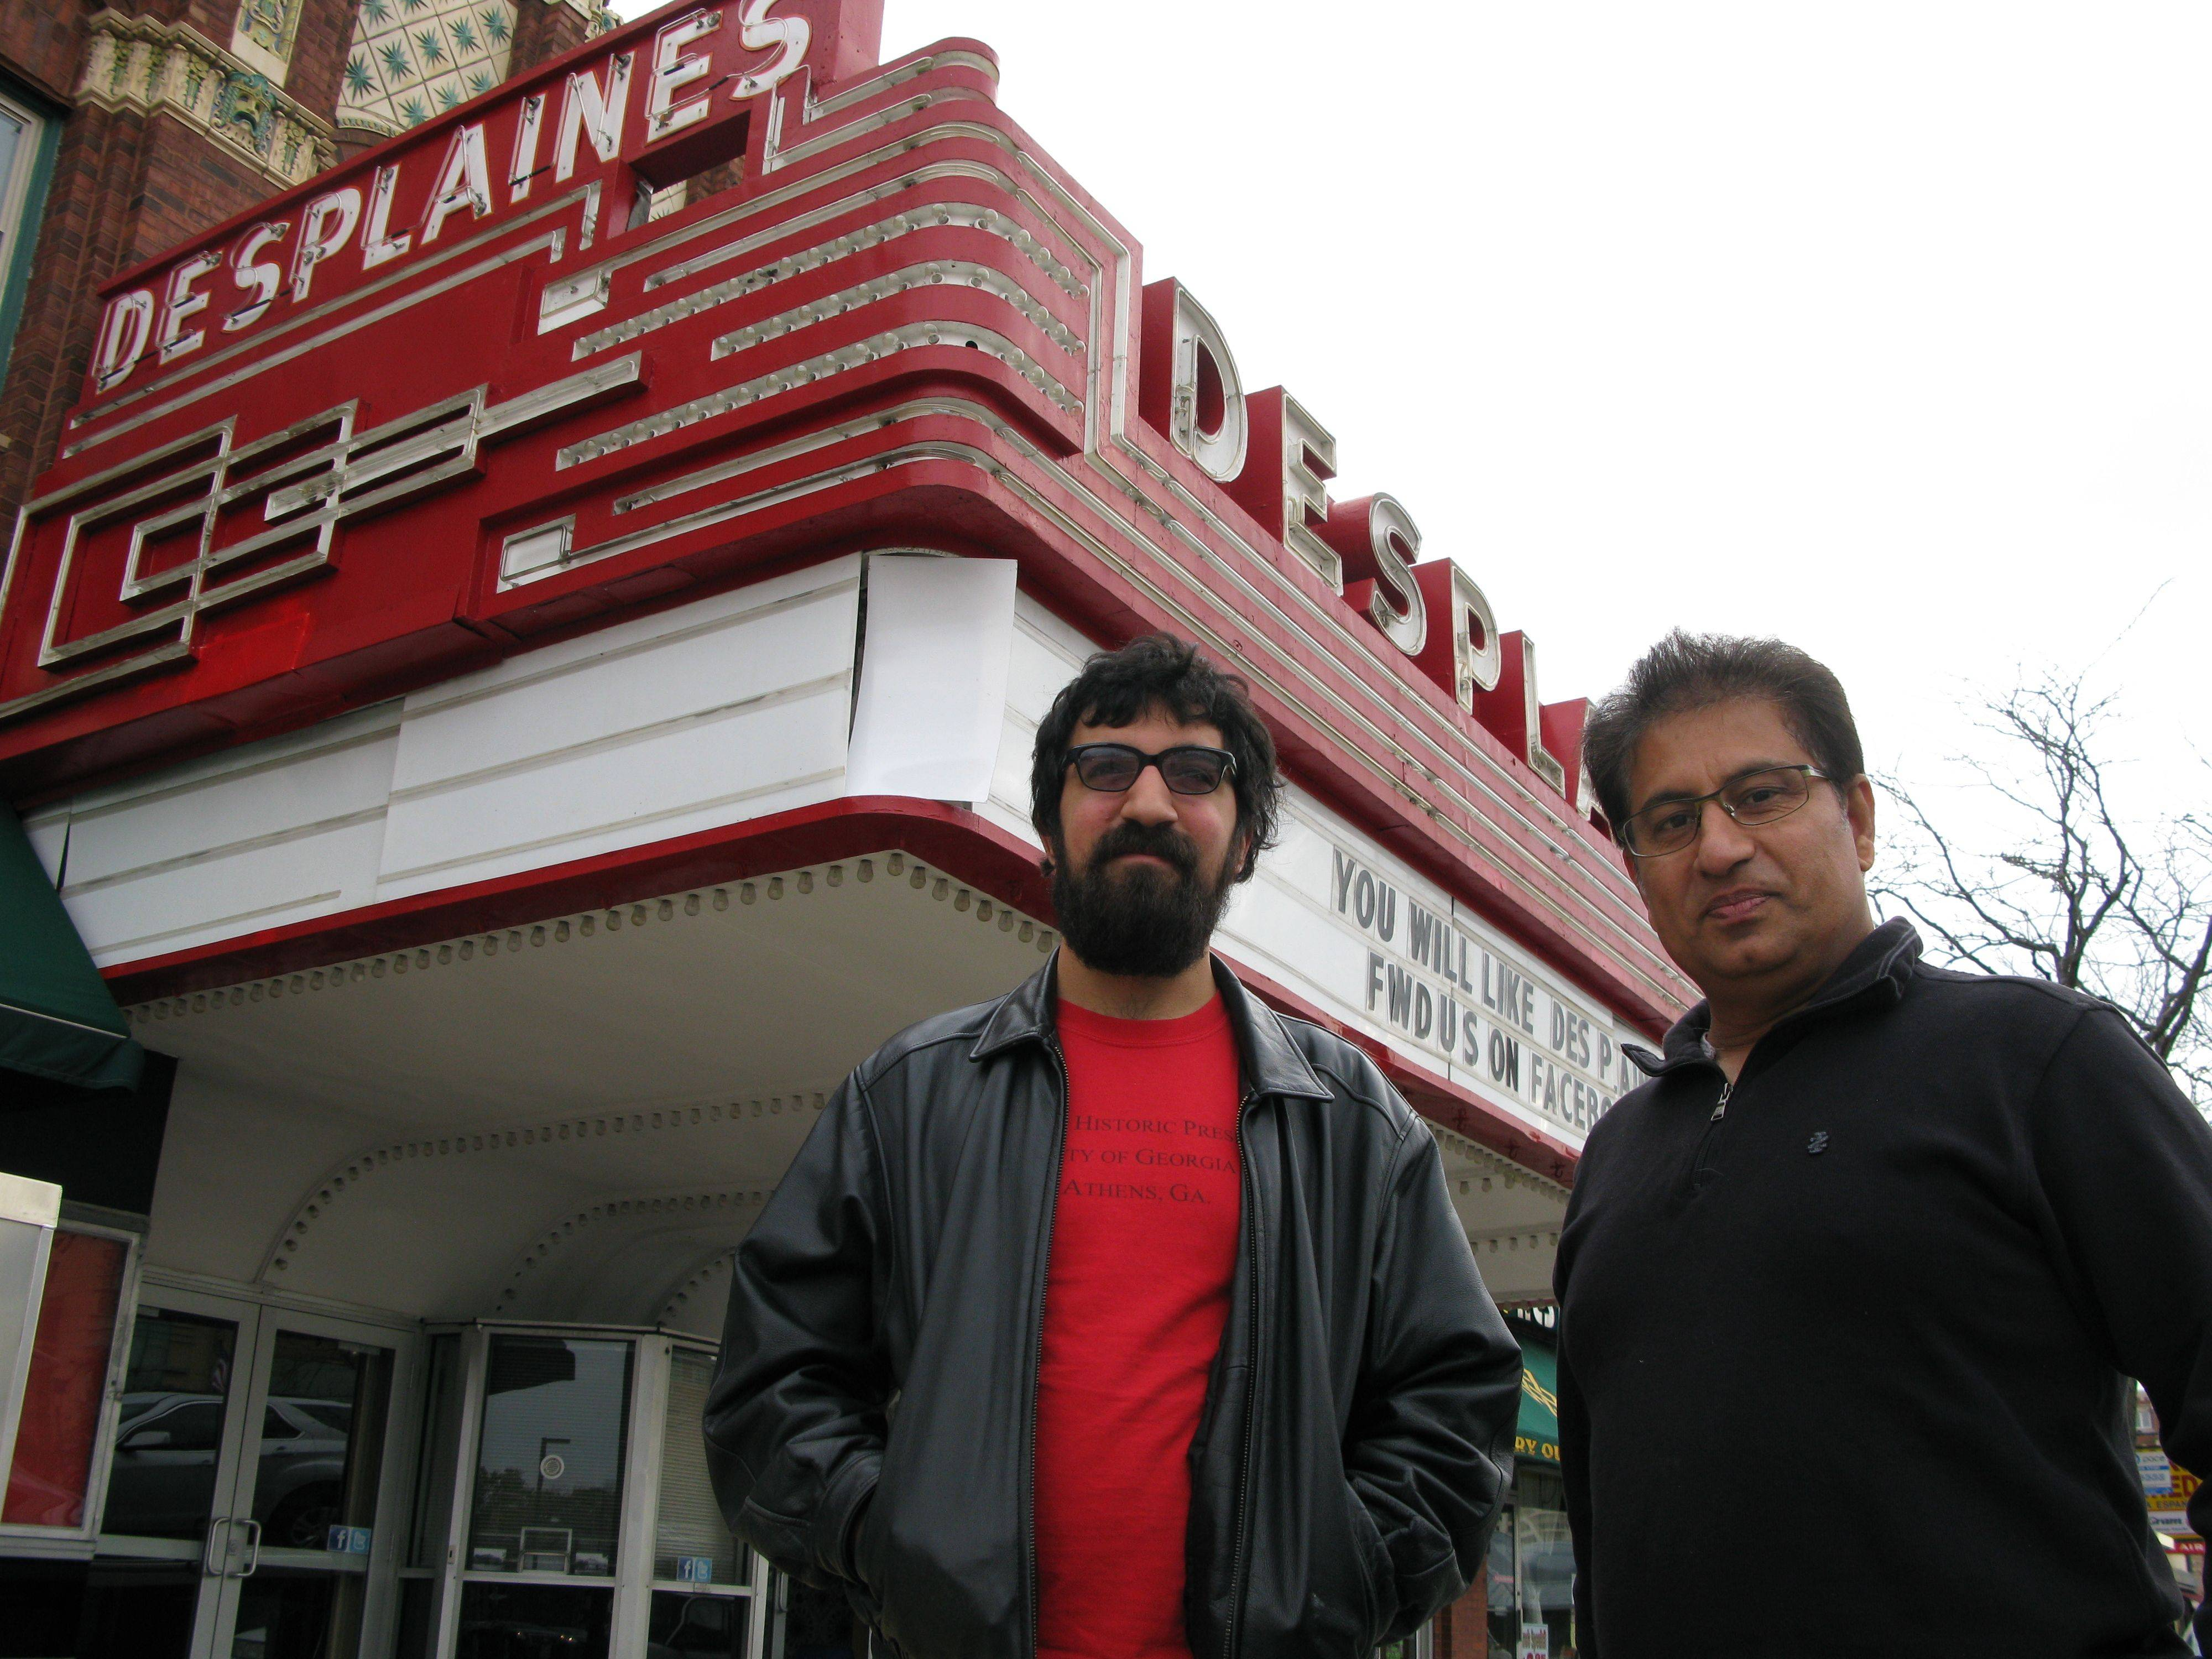 Renovated Des Plaines Theatre to reopen Nov. 11